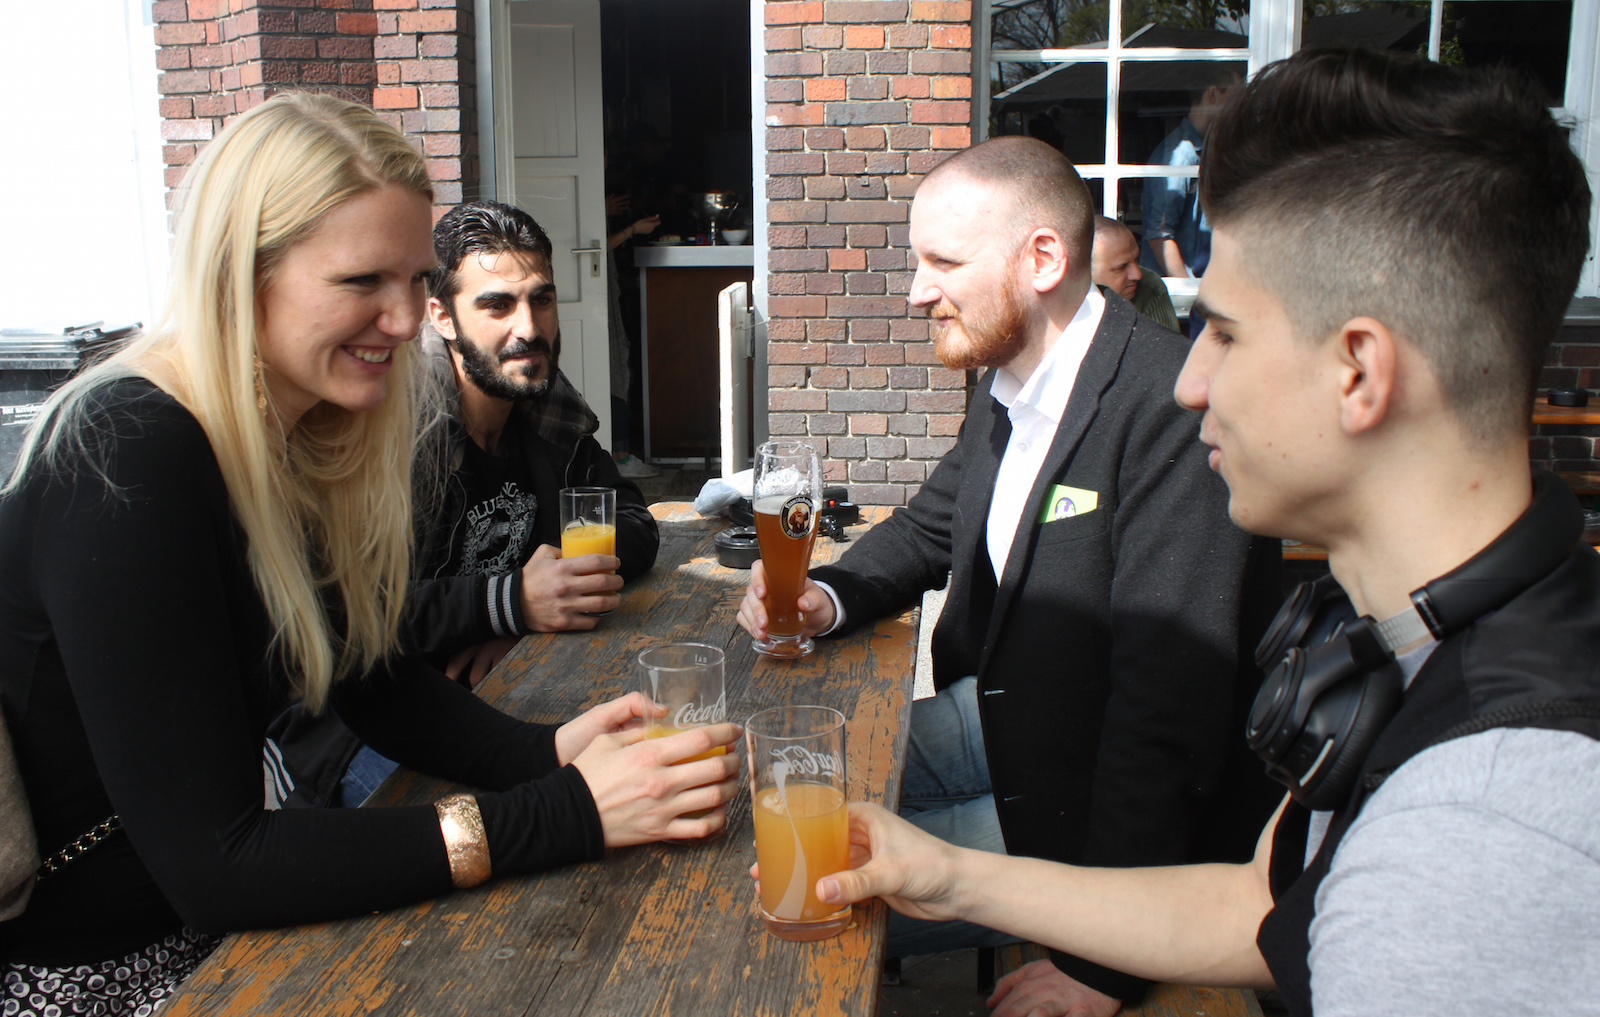 In this May 1, 2016 photo Cindy Spieker, Ahmed Haj Ali, Paul Spieker and Abdul Wahab, from left, sit around a table in Berlin. The group met through a website called 'Let's integrate!' that sets dates between refugees and locals in Berlin.